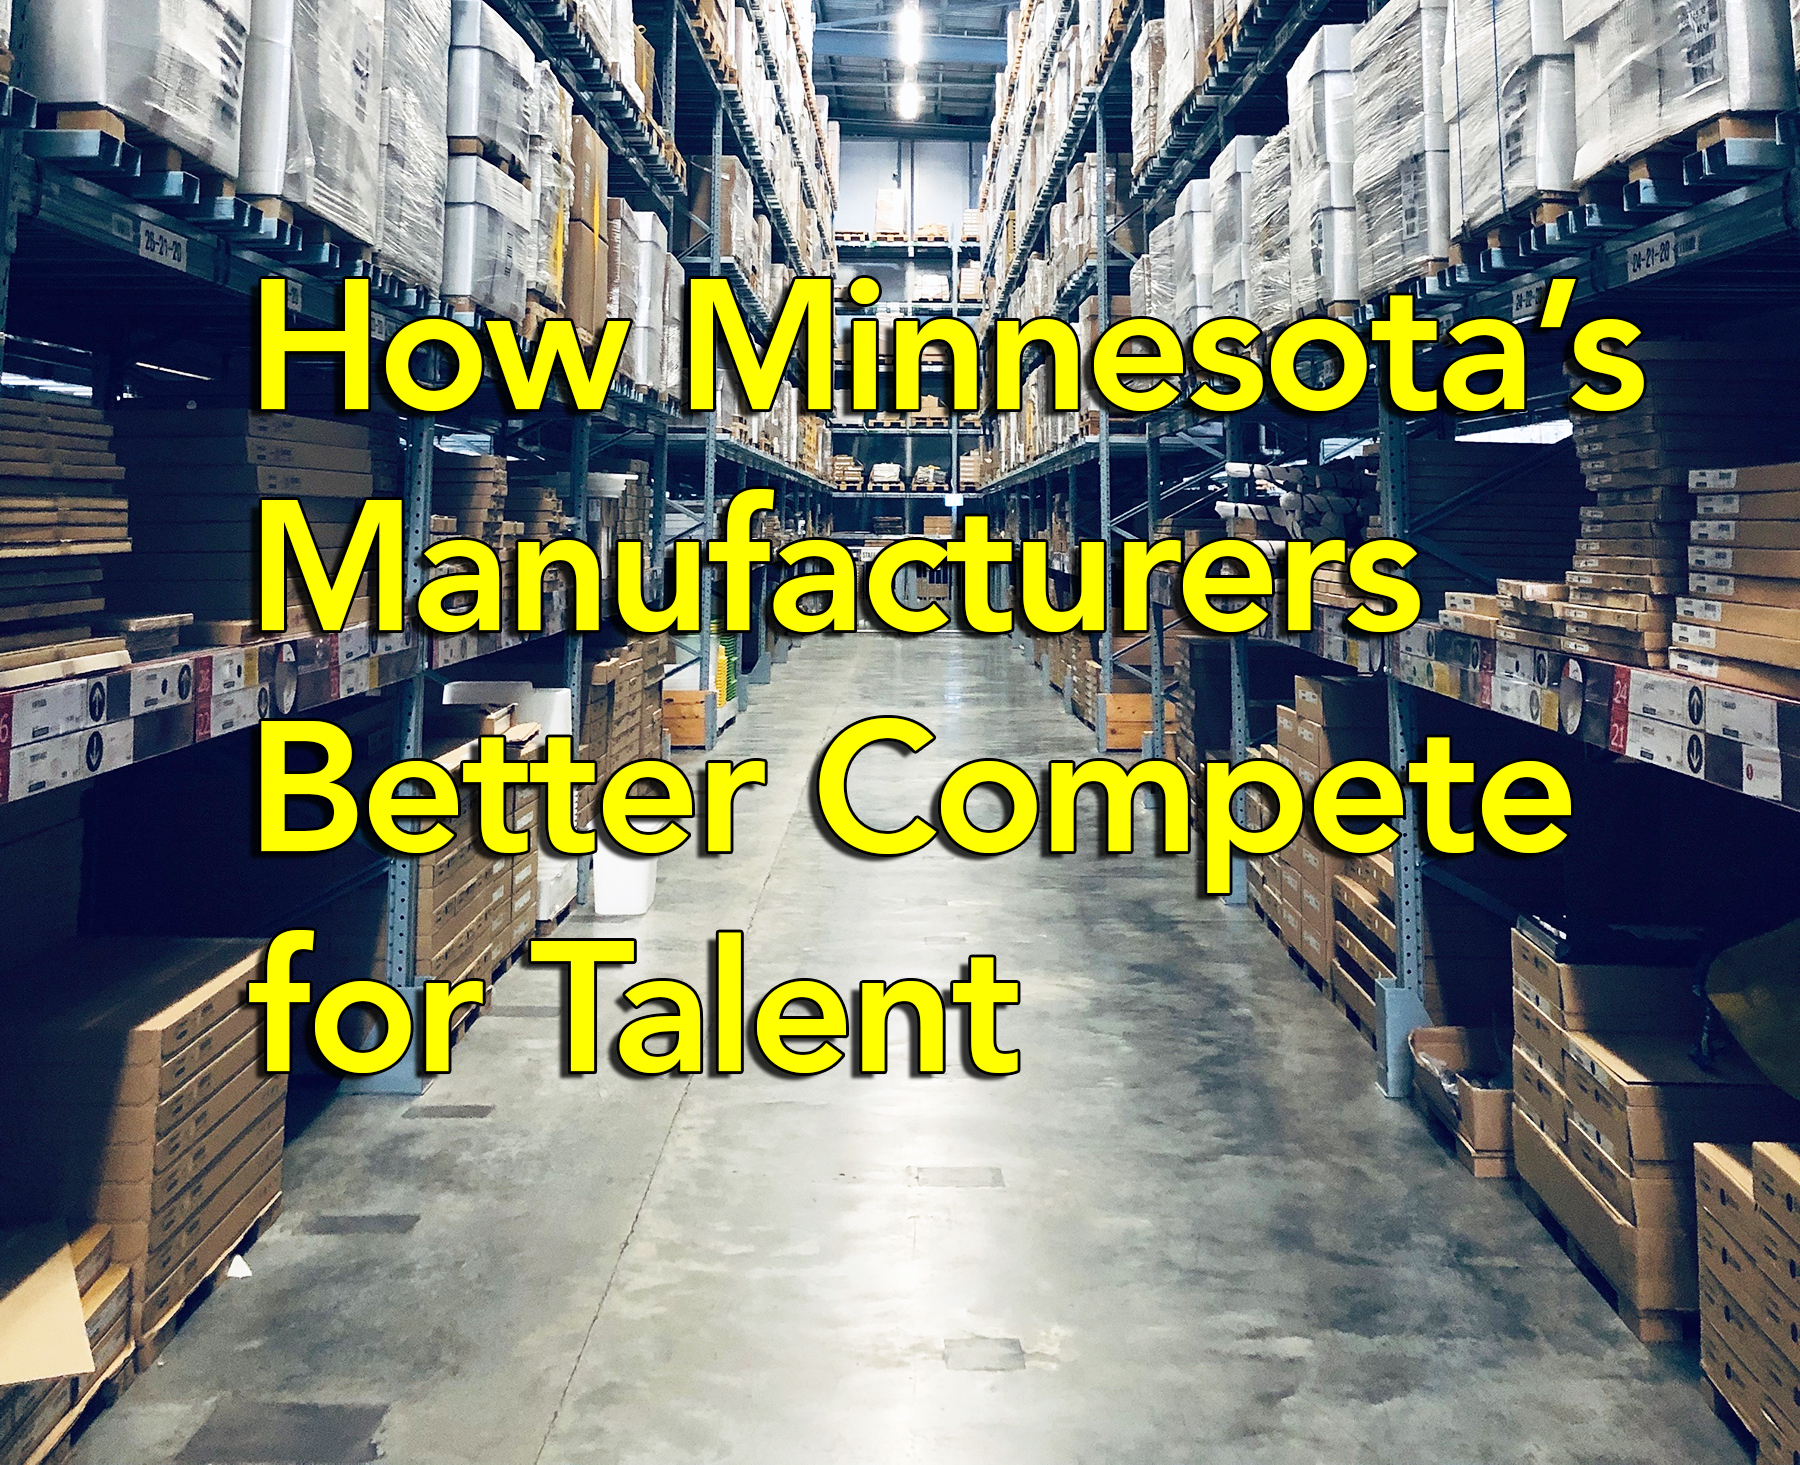 How Minnesota's Manufacturers Better Compete for Talent